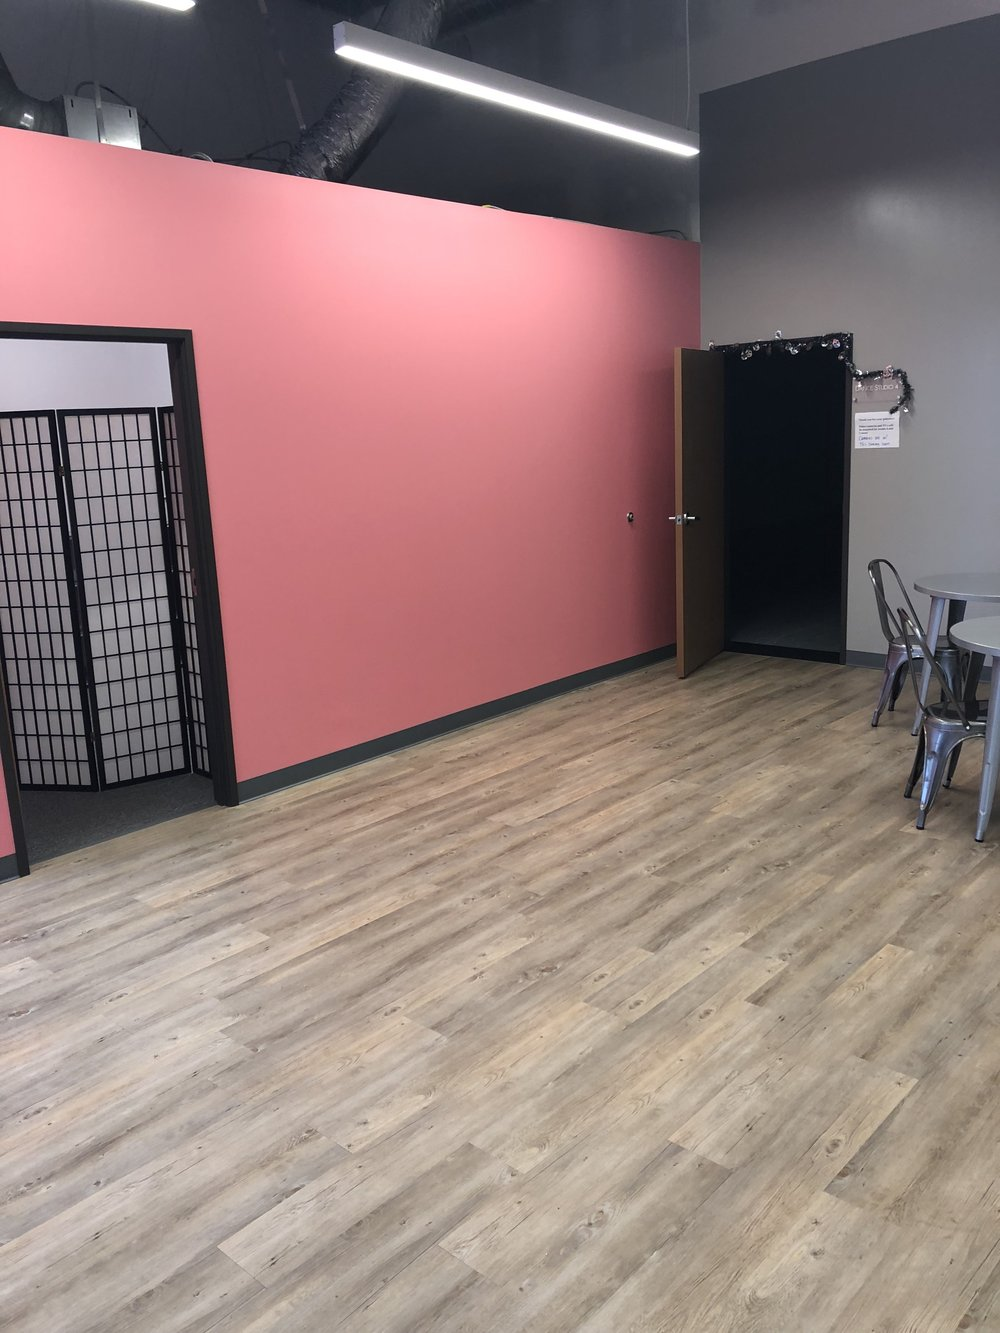 expanded lobby/second changing room entrance